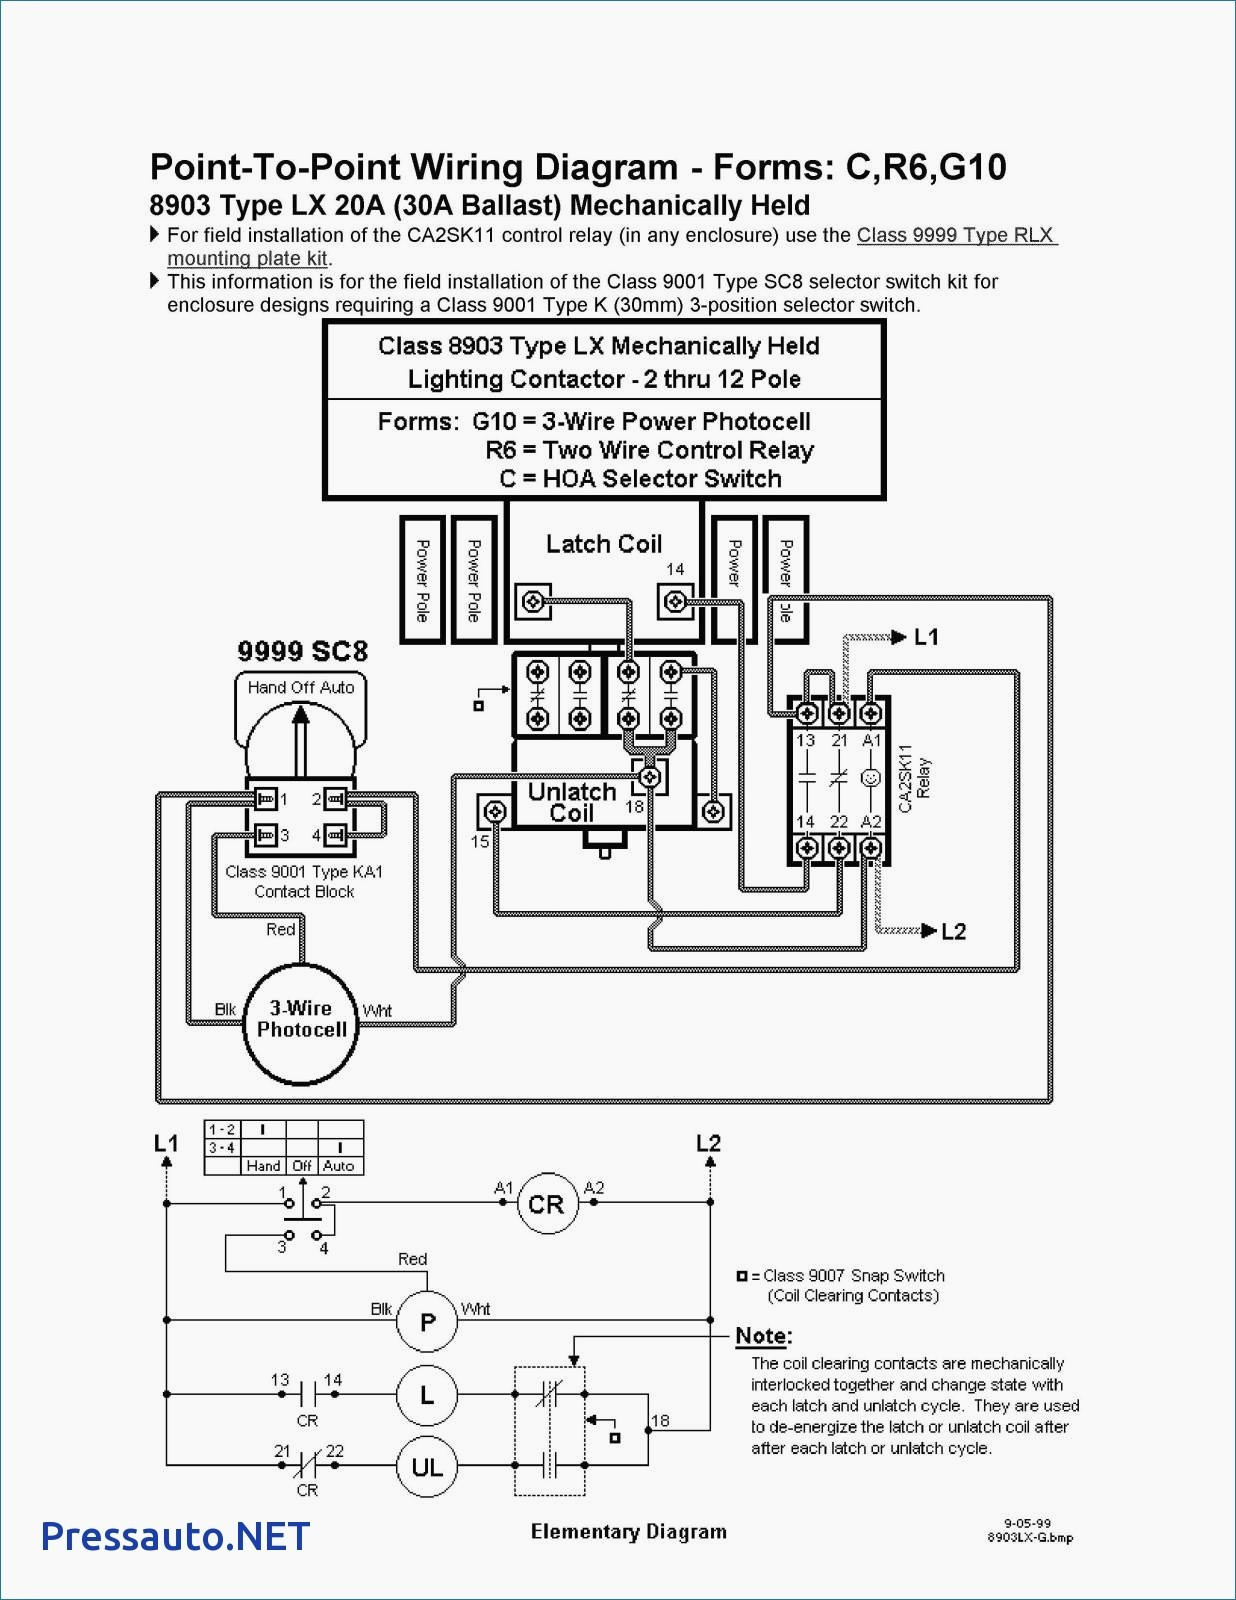 square d 8903 lighting contactor wiring diagram Download-Square D 893 Lighting Contactor Wiring Diagram Unique Class How To Wire In Square D 8903 10-k